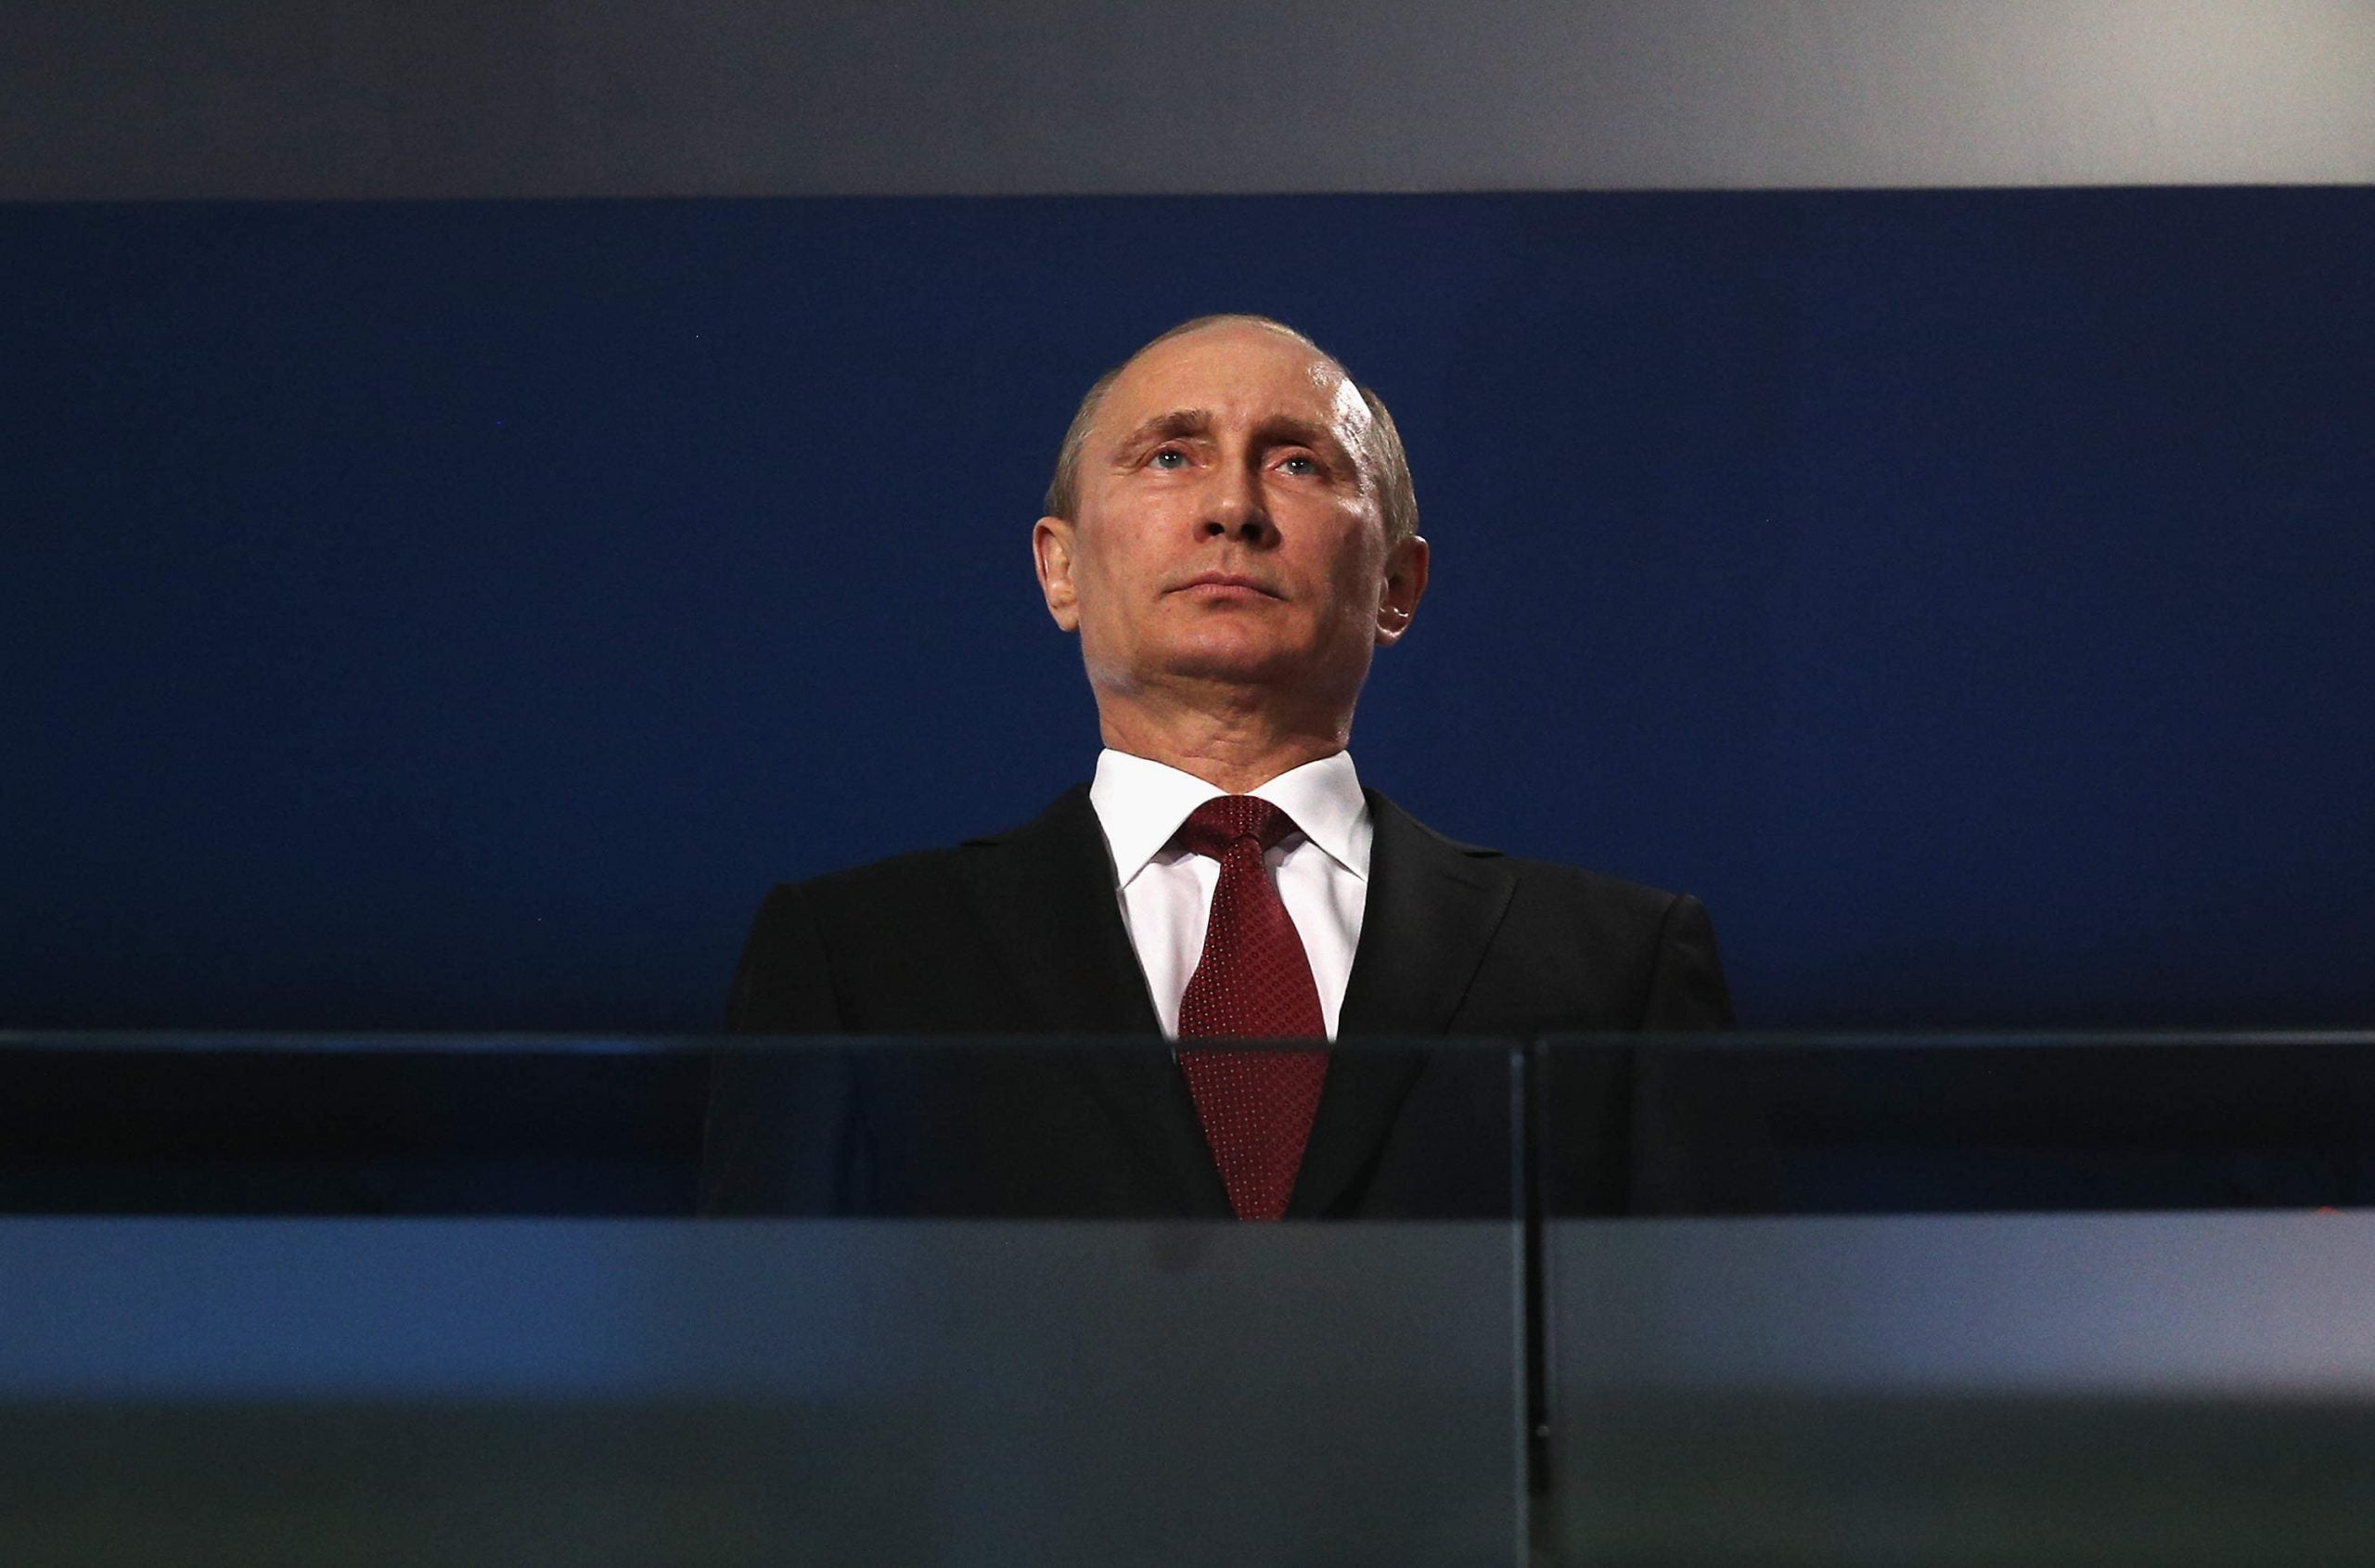 How Putin conned us into thinking Russia is a superpower again